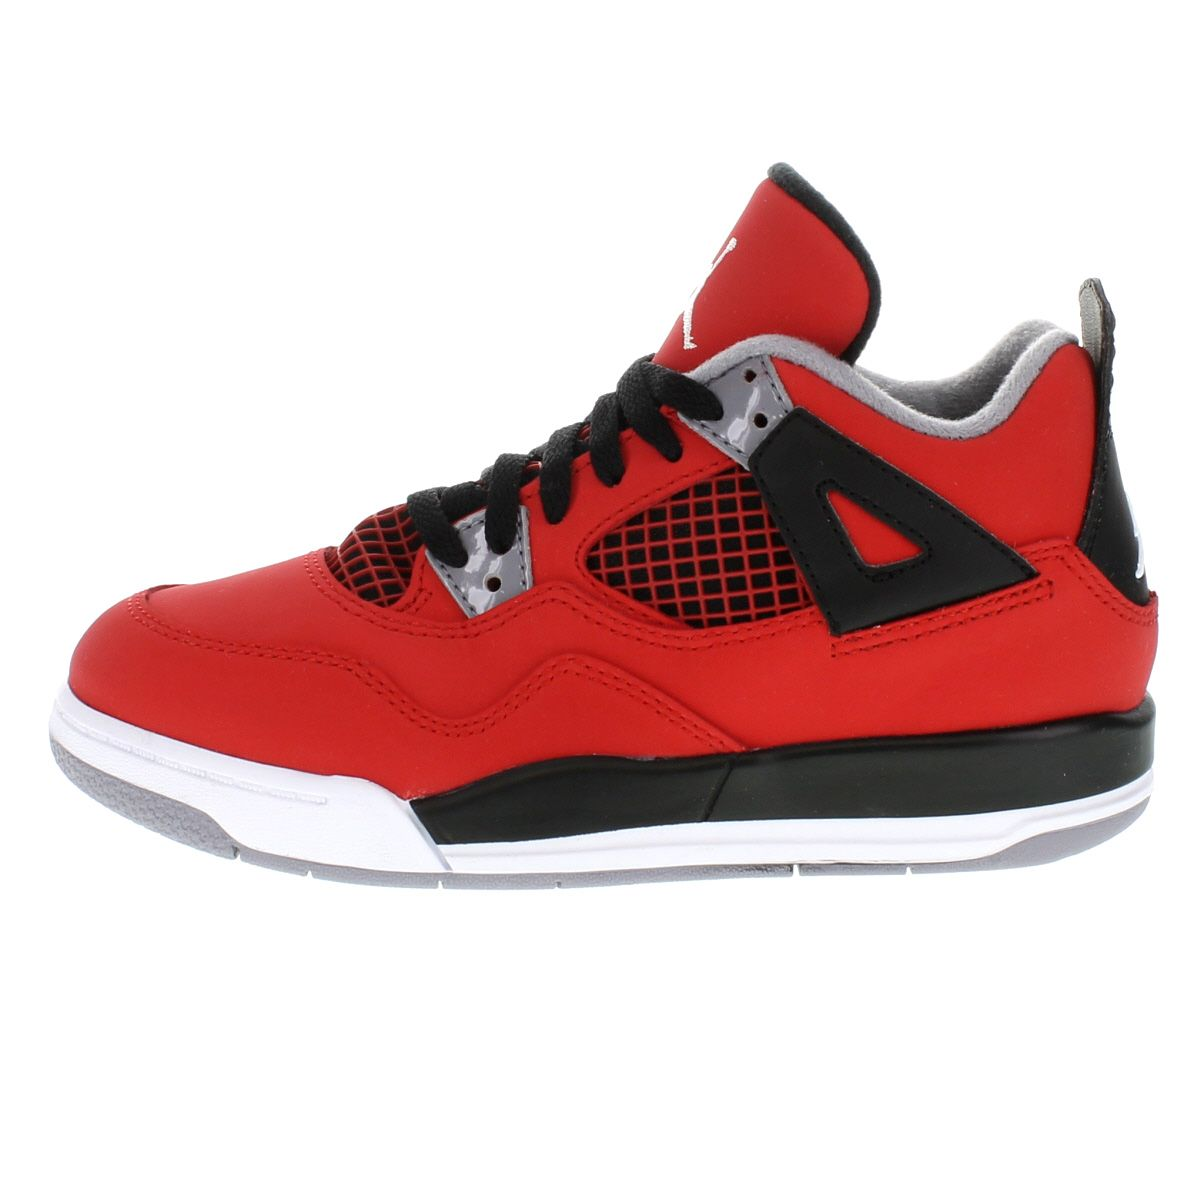 ffe4bdb2e9fc9a Jordan Retro 4 (PS)  74.99 This basketball shoe is great for comfort and  performance with its high quality craftsmanship.